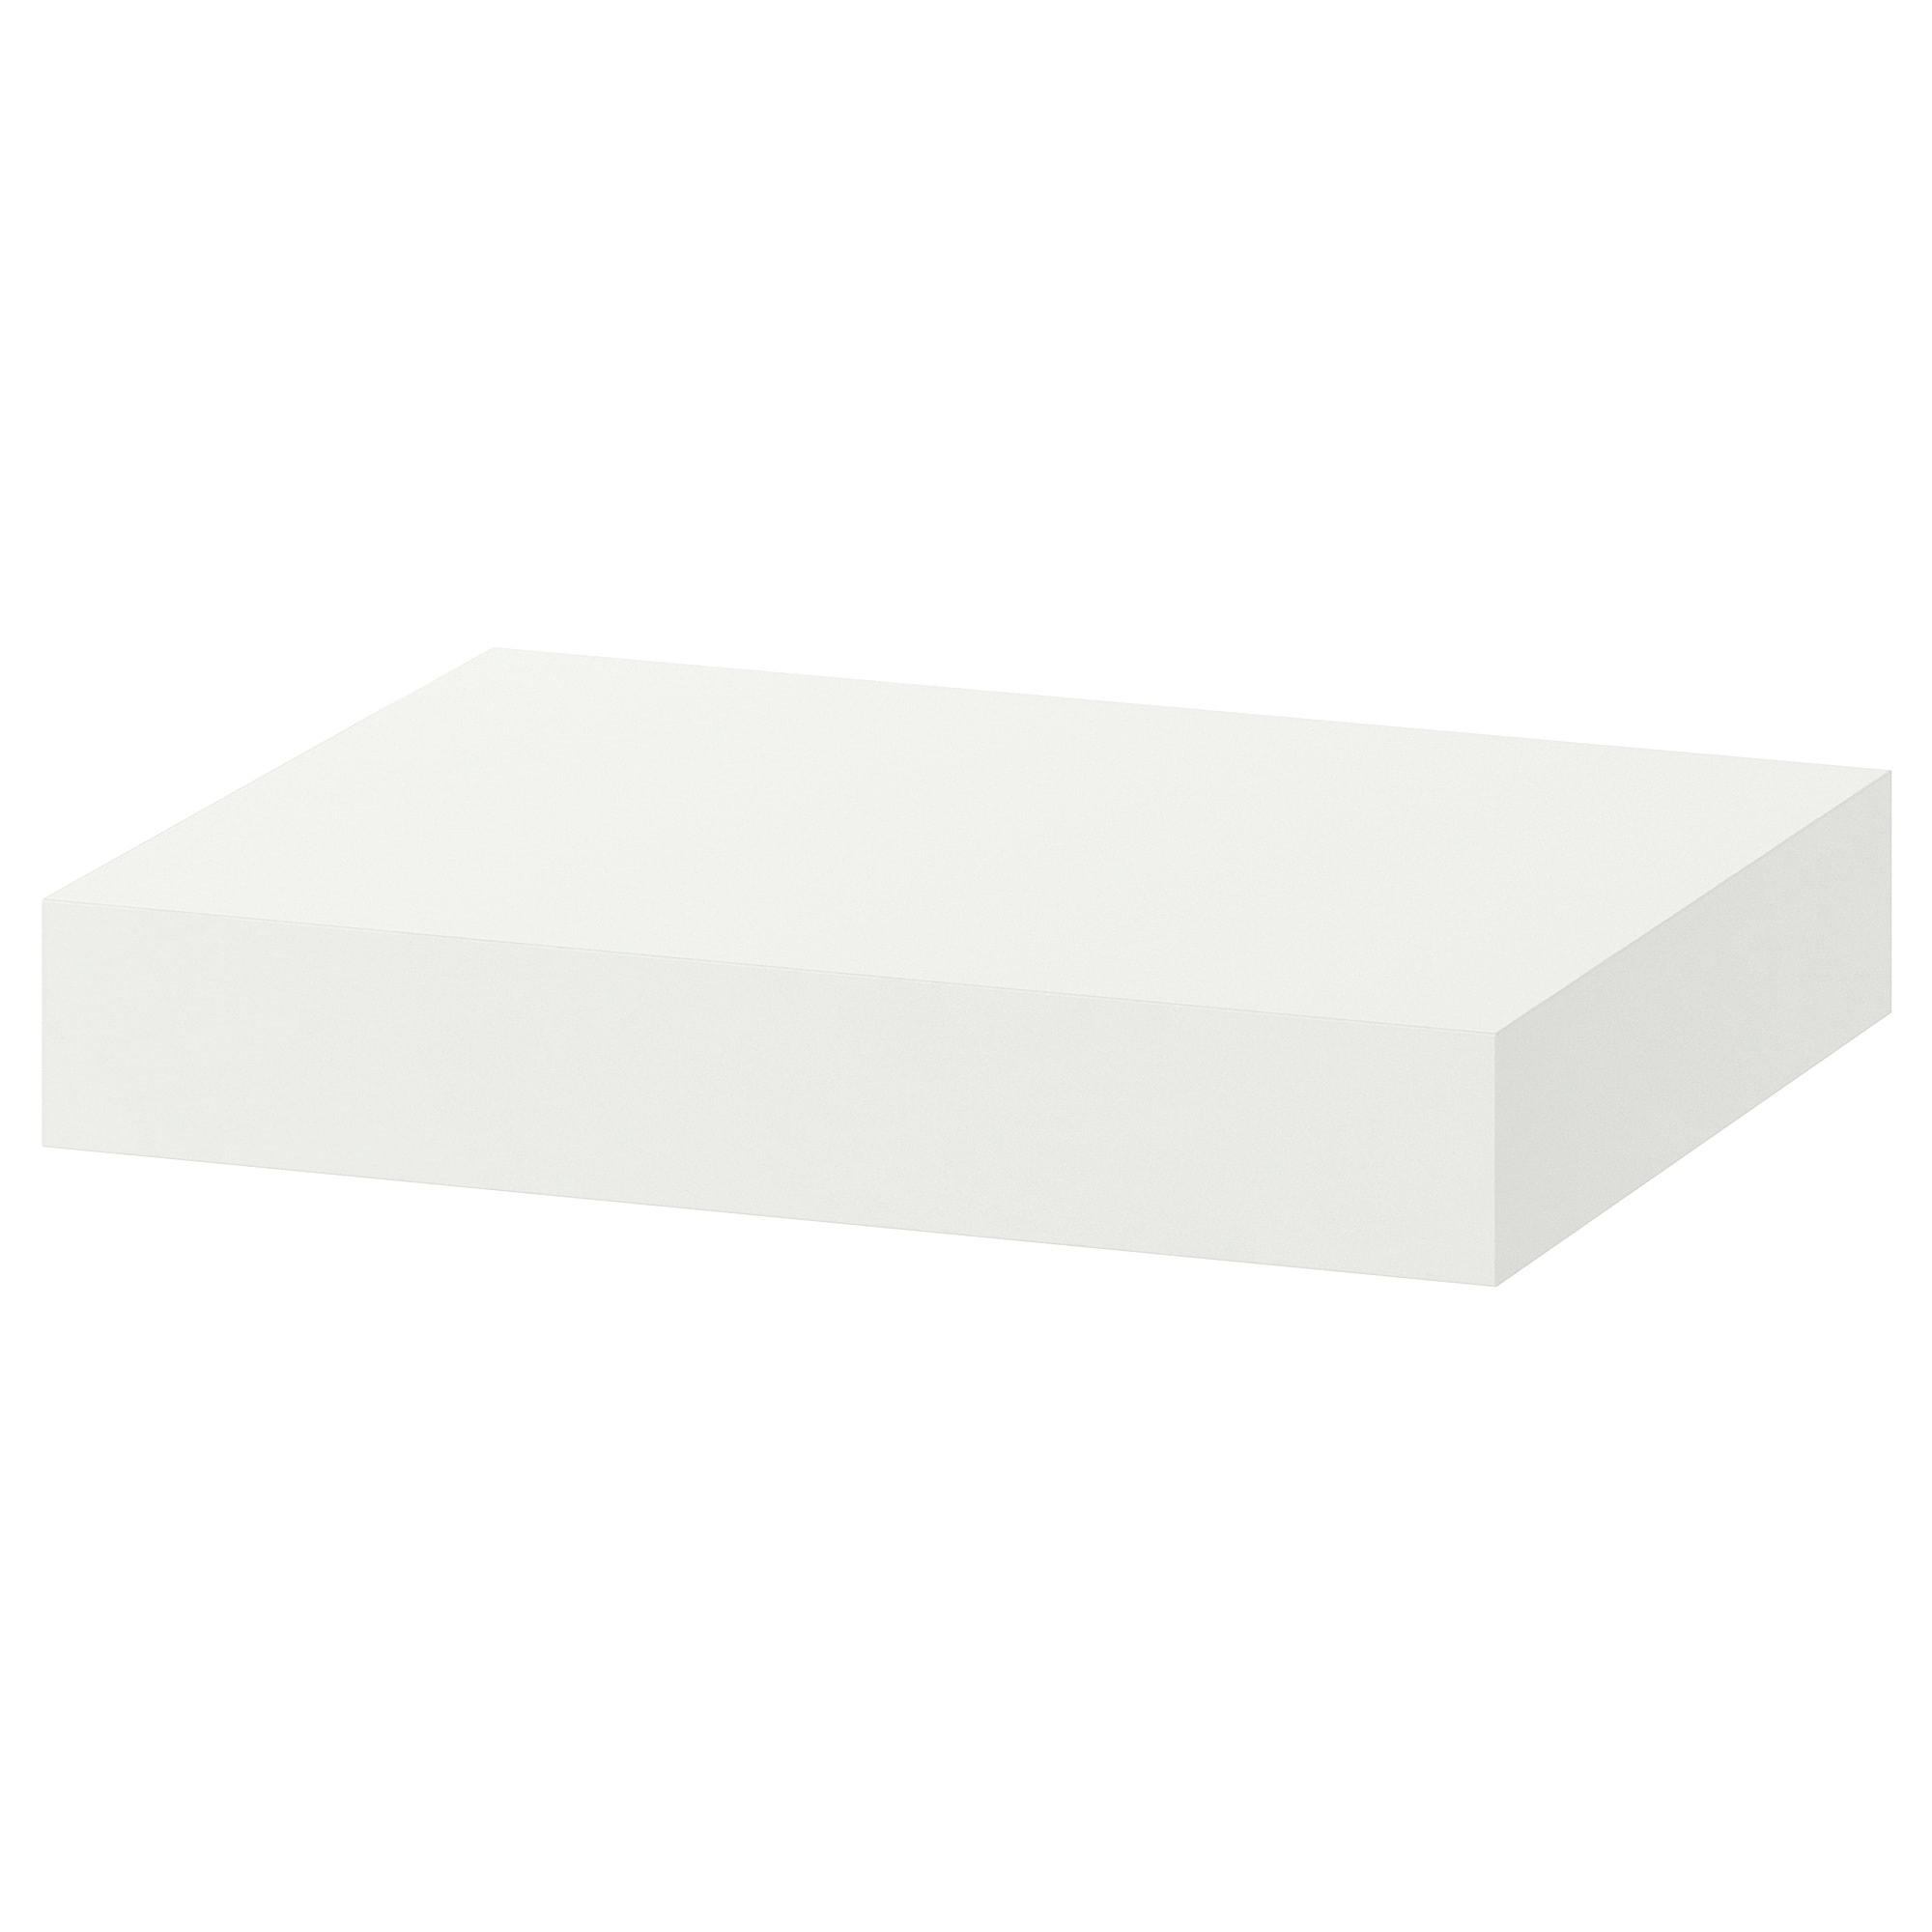 floating shelves ikea lack wall shelf white gloss the becomes one with thanks concealed mounting entryway mount bookcase towel storage cabinet shower bracket holder inch wood